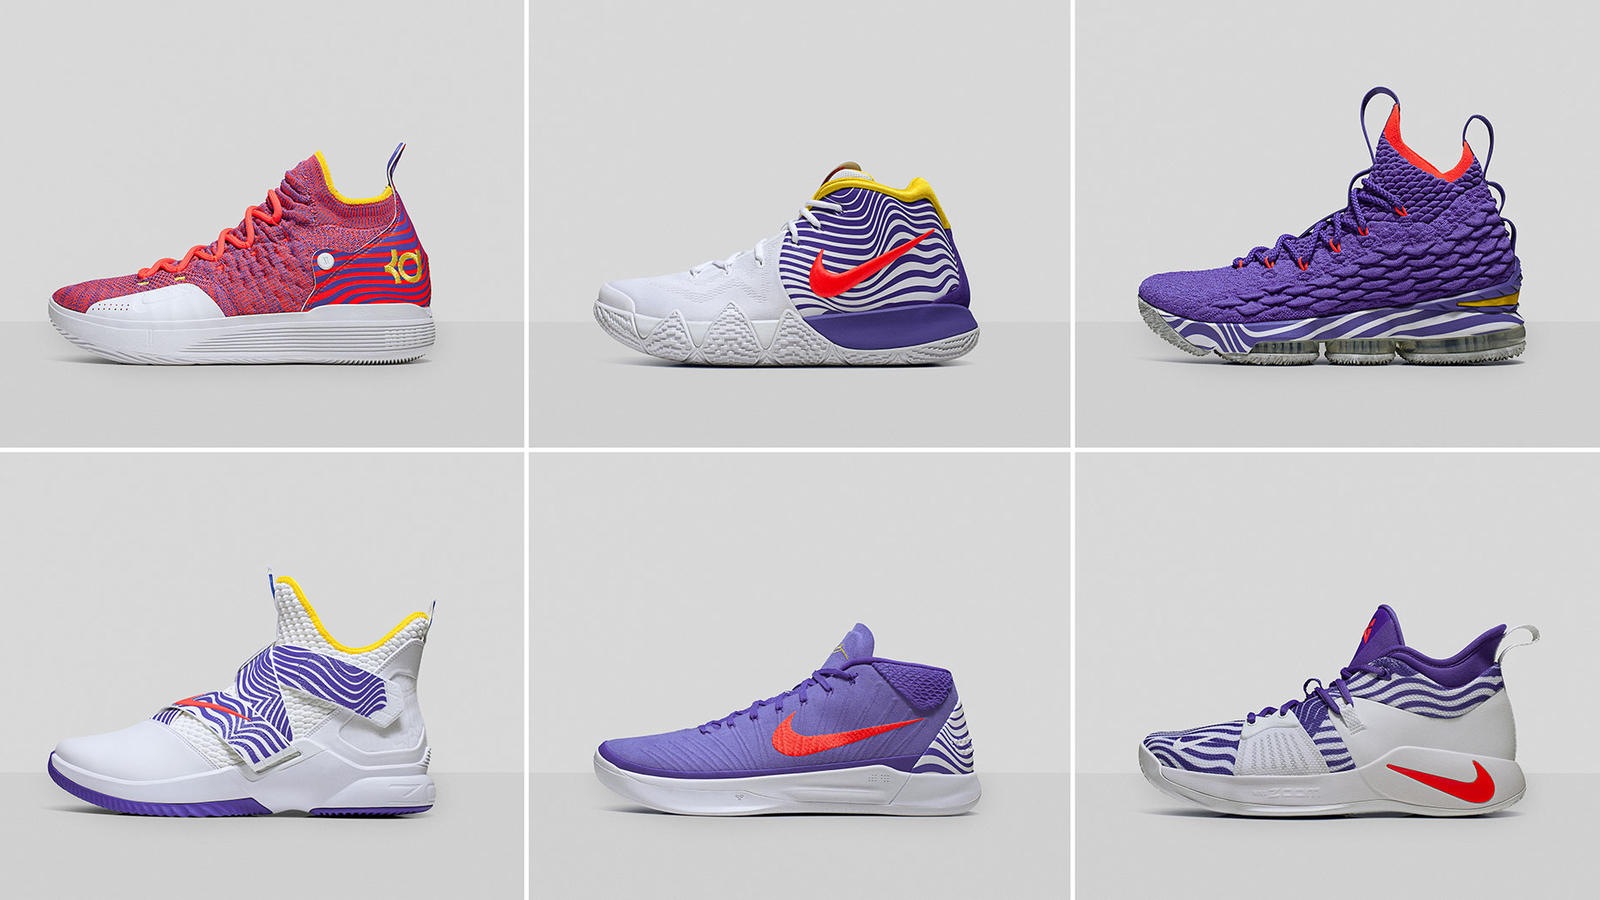 93a45753c3f 2018 WNBA All-Star Game PE Collection - Nike News